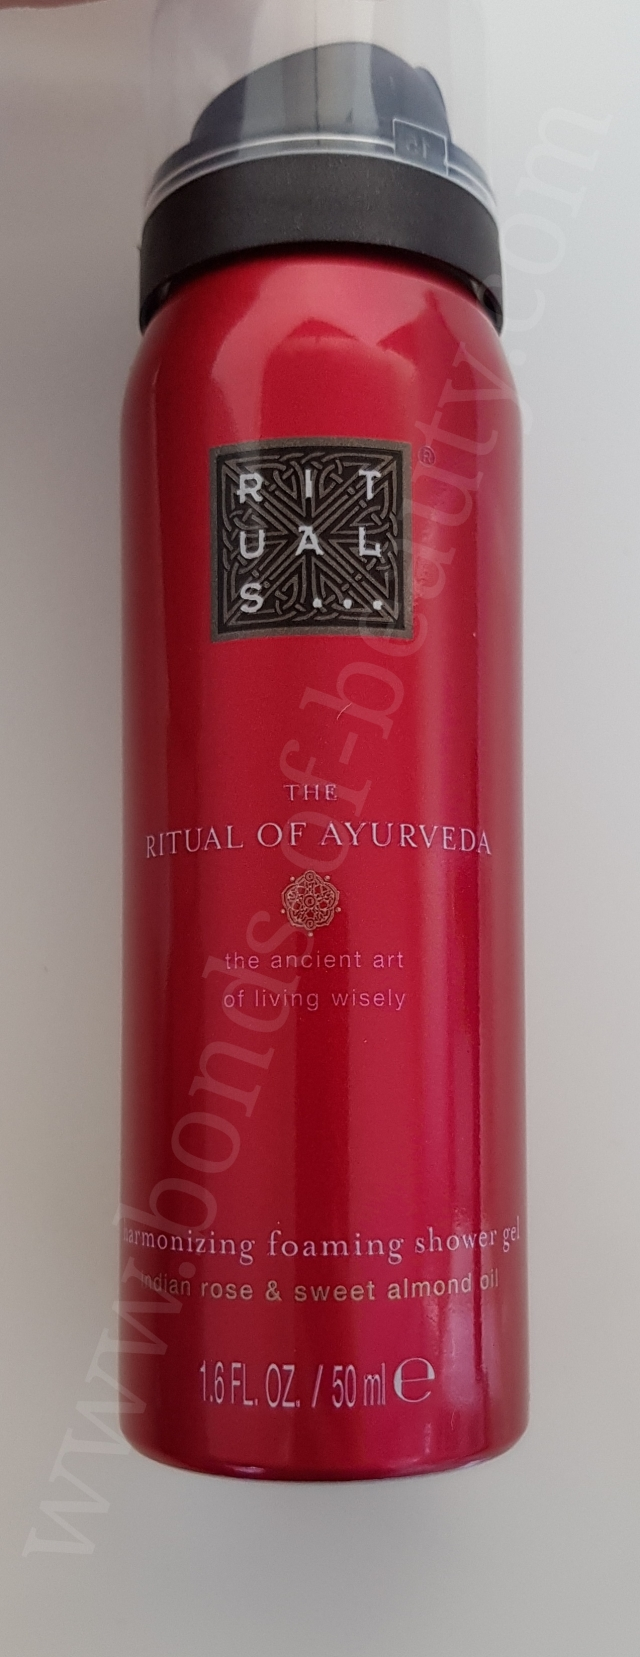 Rituals The Ritual of Ayurveda Foaming Shower Gel_20171210183839996